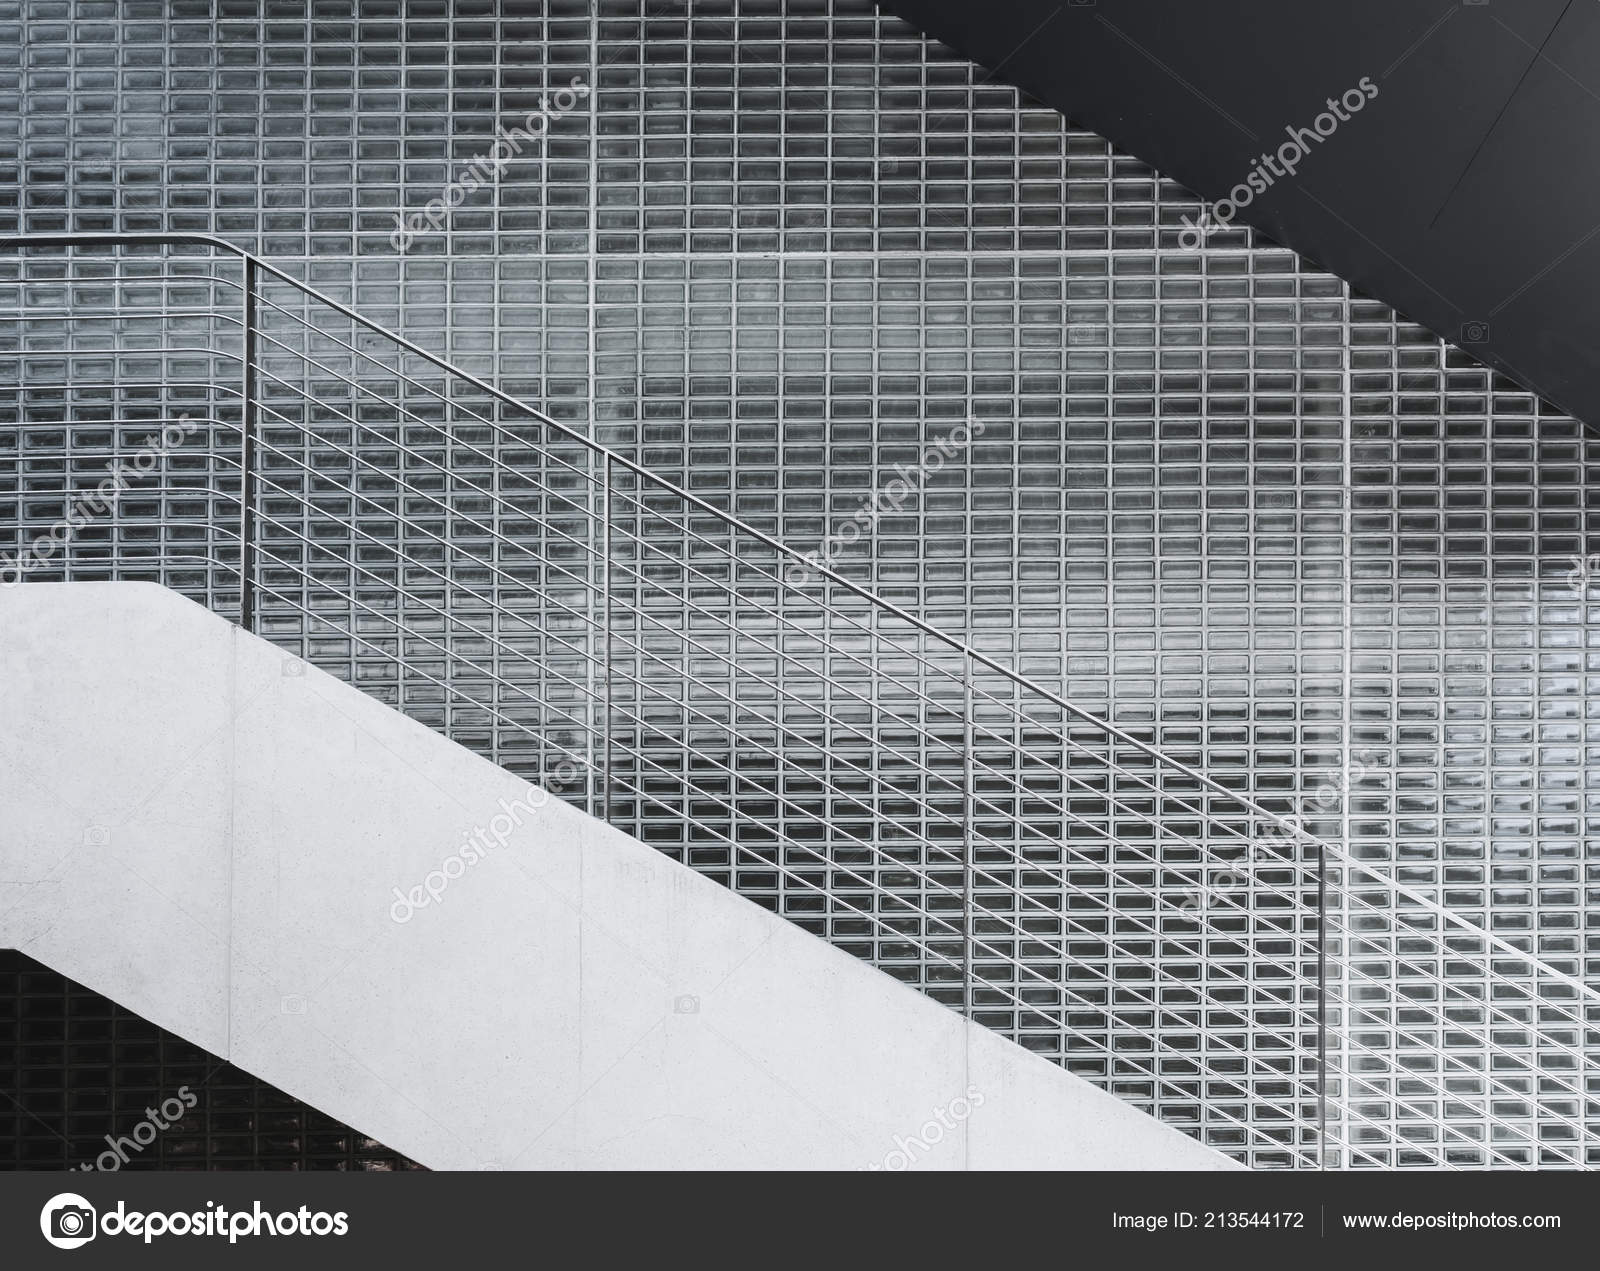 Architecture Details Wall Glass Block Stairs Modern Building